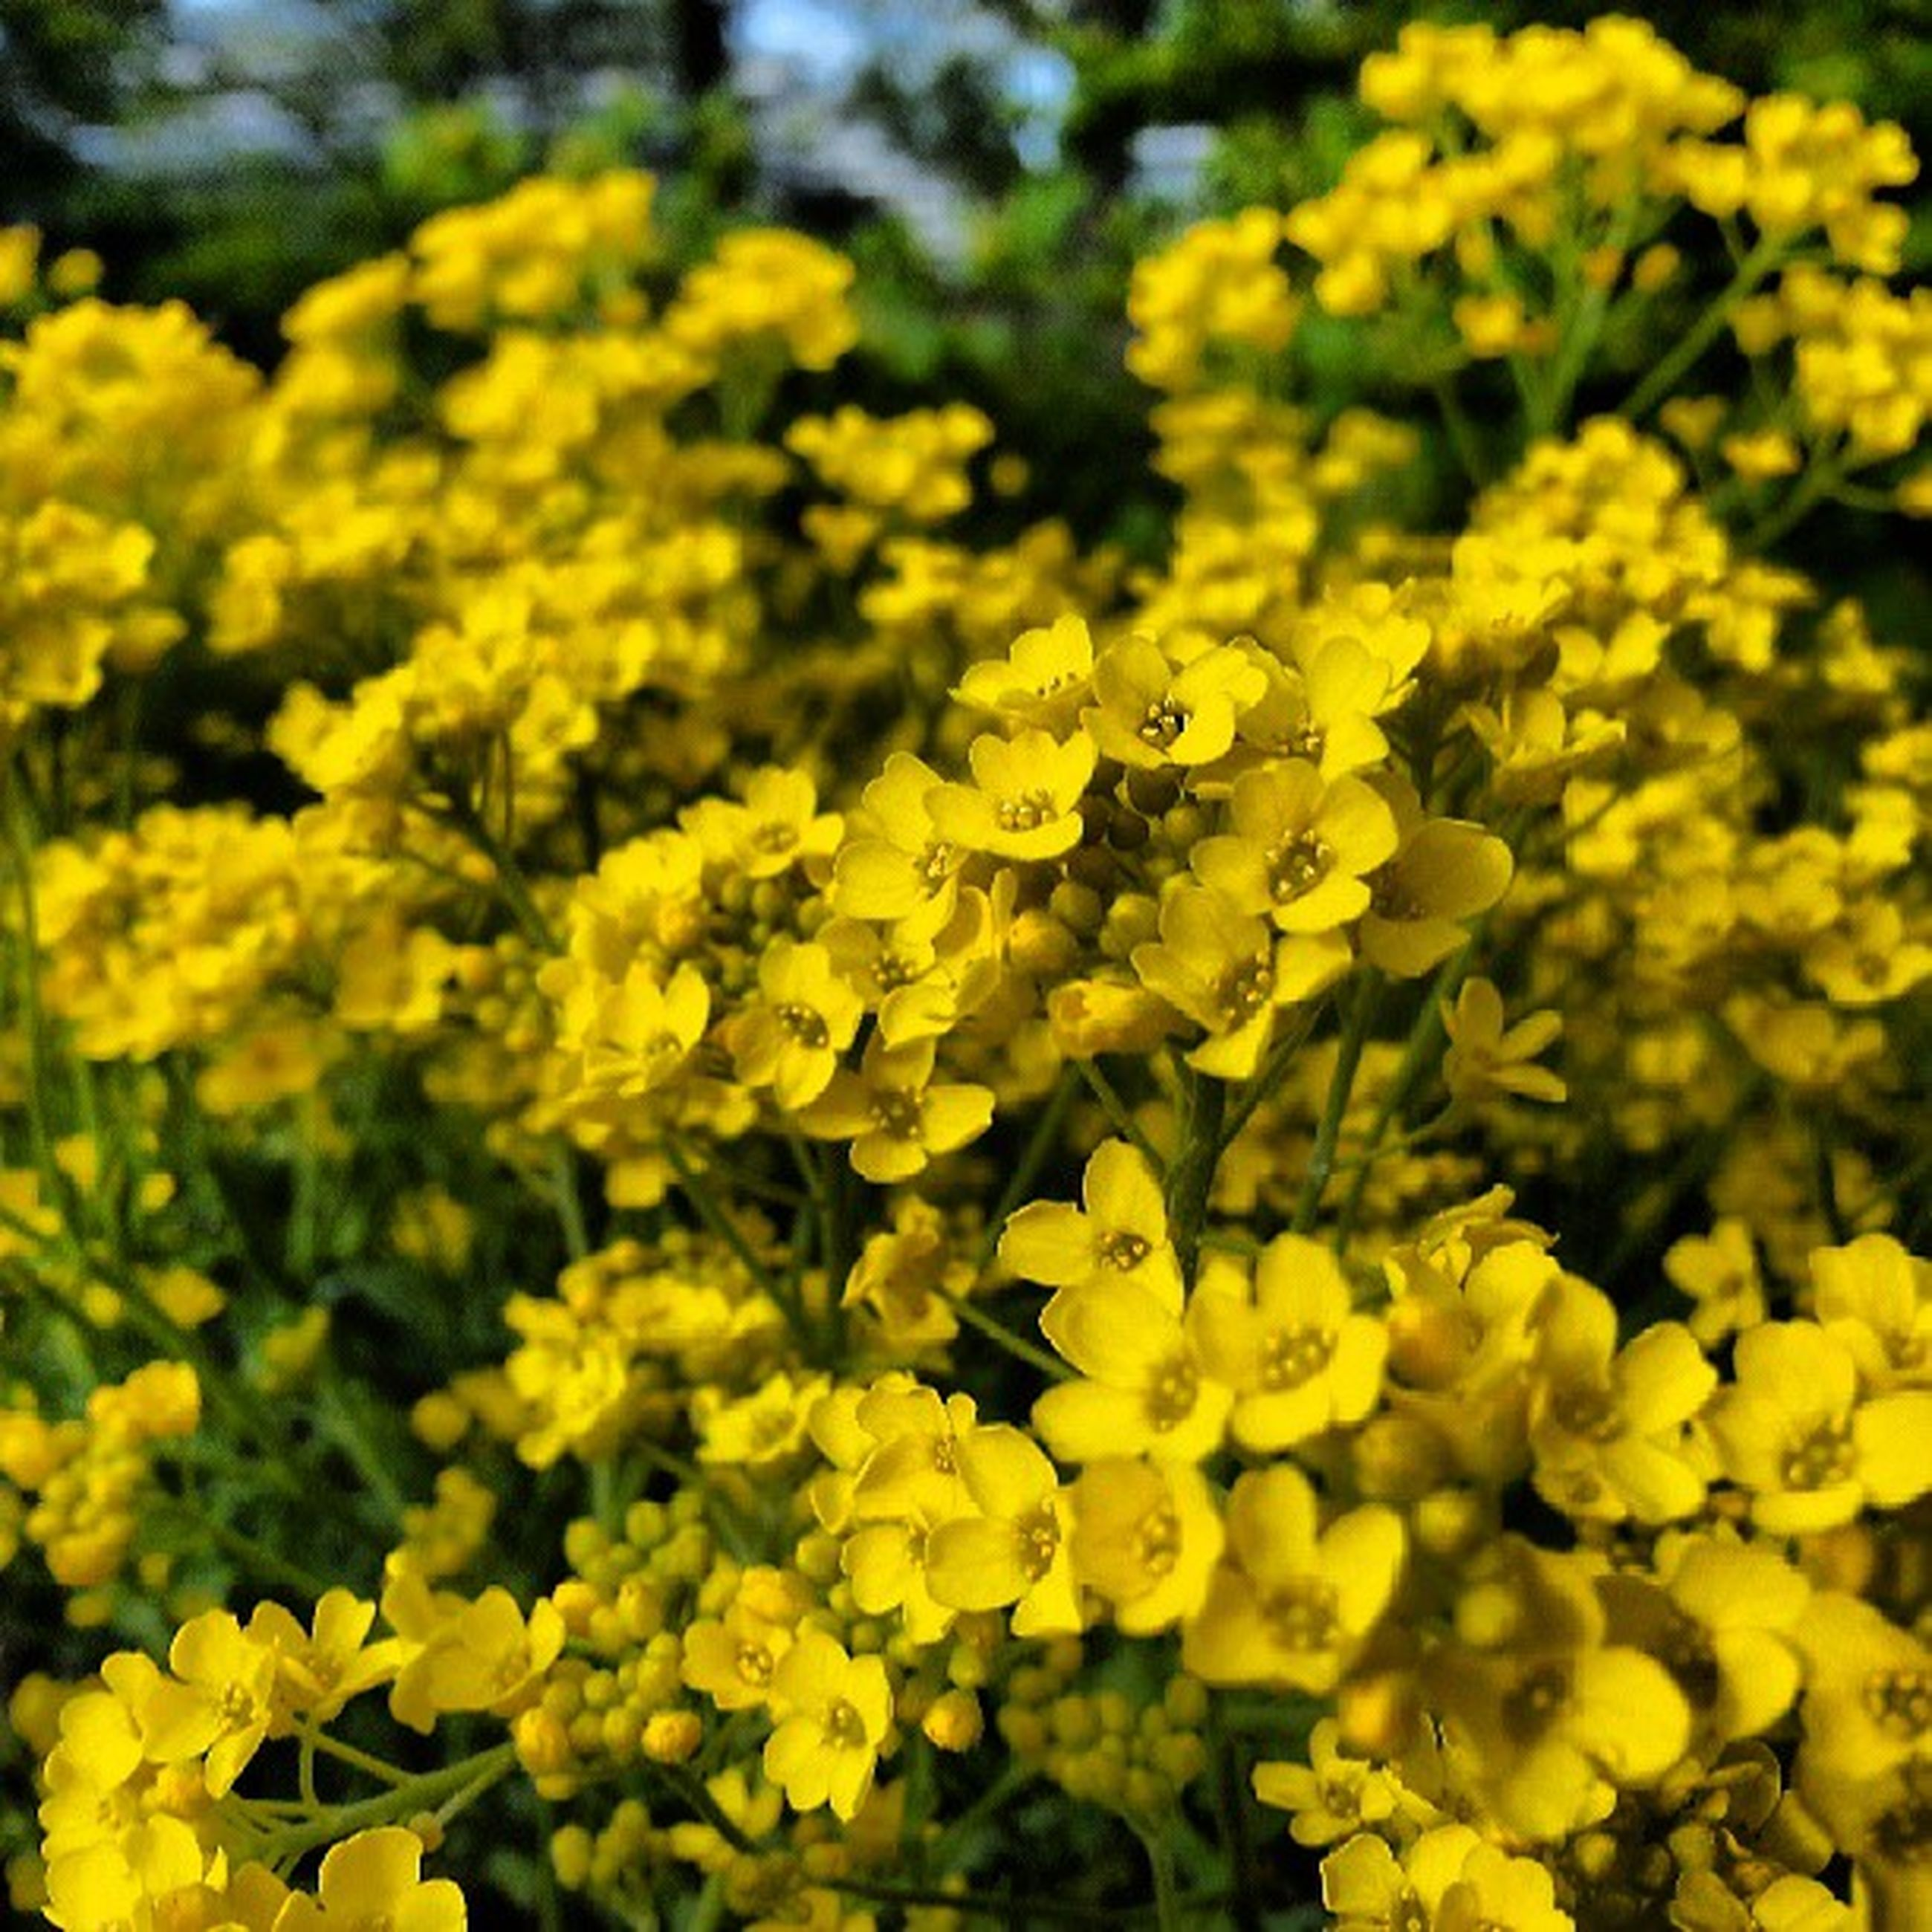 flower, yellow, freshness, petal, fragility, growth, beauty in nature, flower head, nature, blooming, focus on foreground, plant, close-up, selective focus, insect, in bloom, one animal, outdoors, day, no people